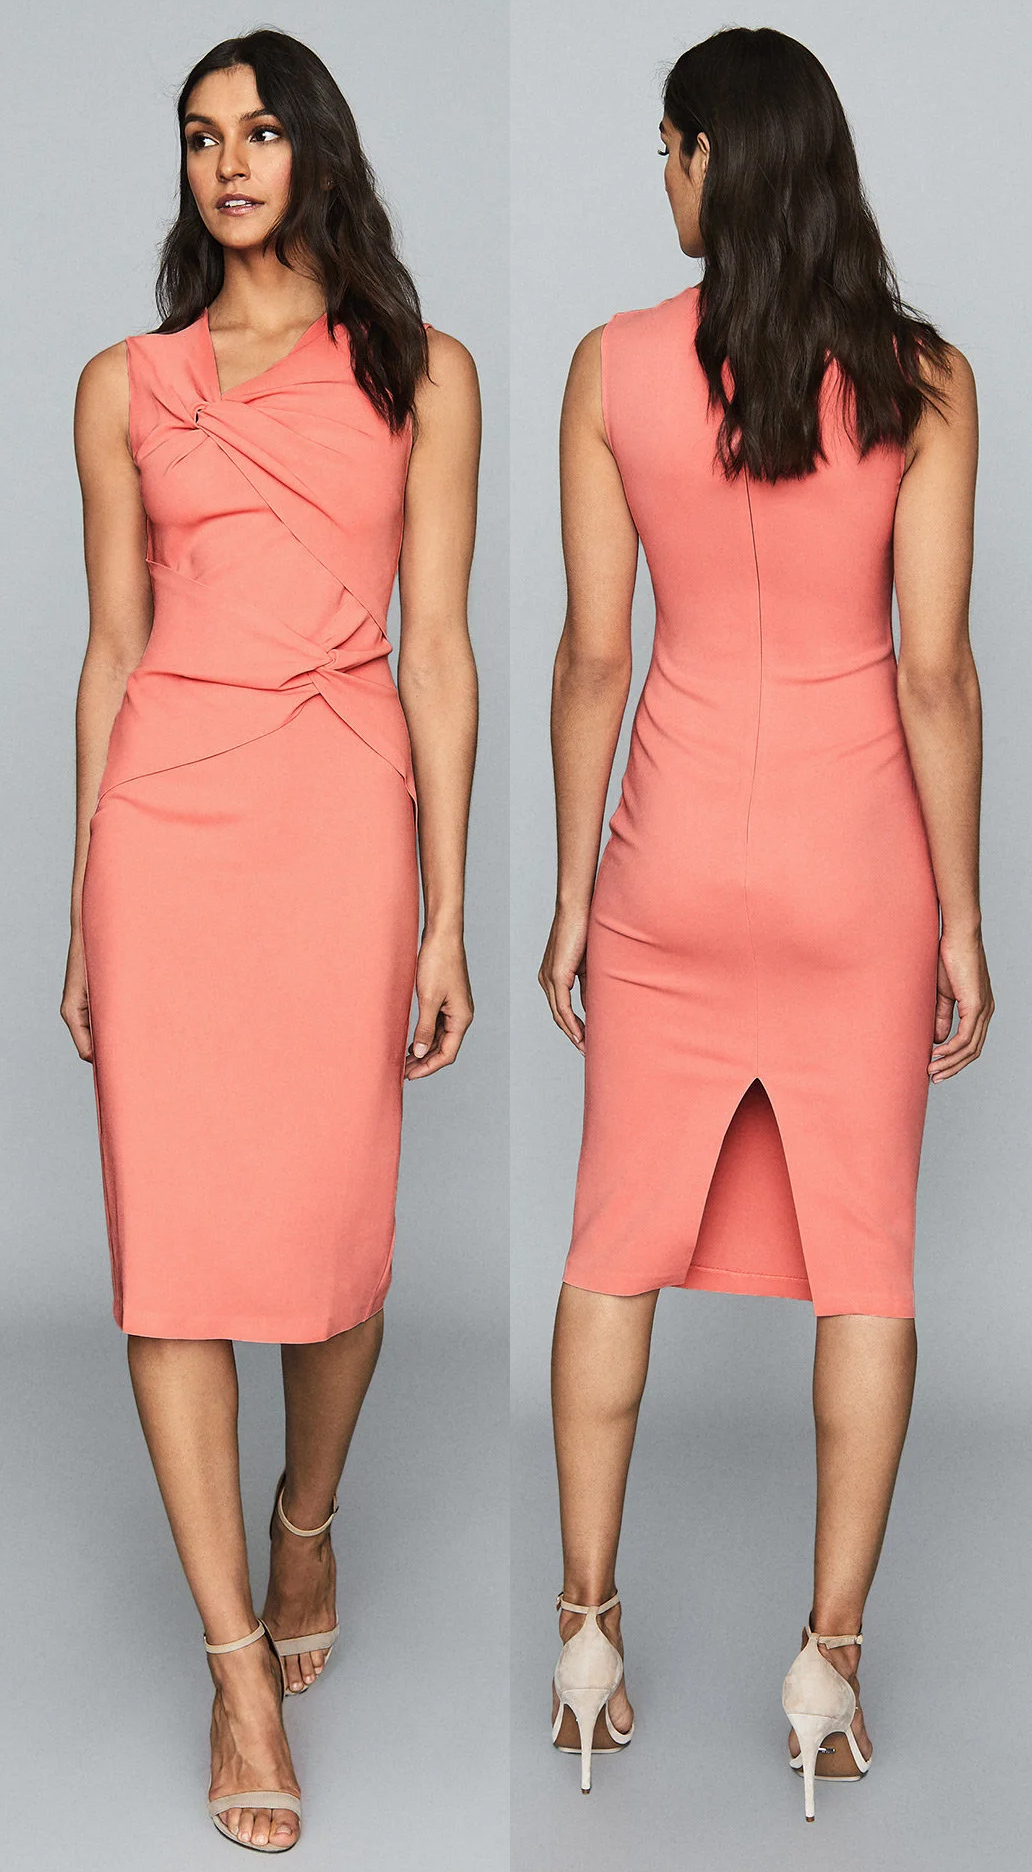 Coral Fitted dress for the Races. Coral Mother of the Bride Dress 2021. Dresses that you can wear in the Royal Ascot Royal Enclosure 2021. Royal Ascot 2021 Style Guide. What to wear for a Summer Wedding 2021. Coral Dress to wear to a Wedding 2021. Ideas for Summer wedding guest outfits 2021. What to wear for Royal Ascot 2021.